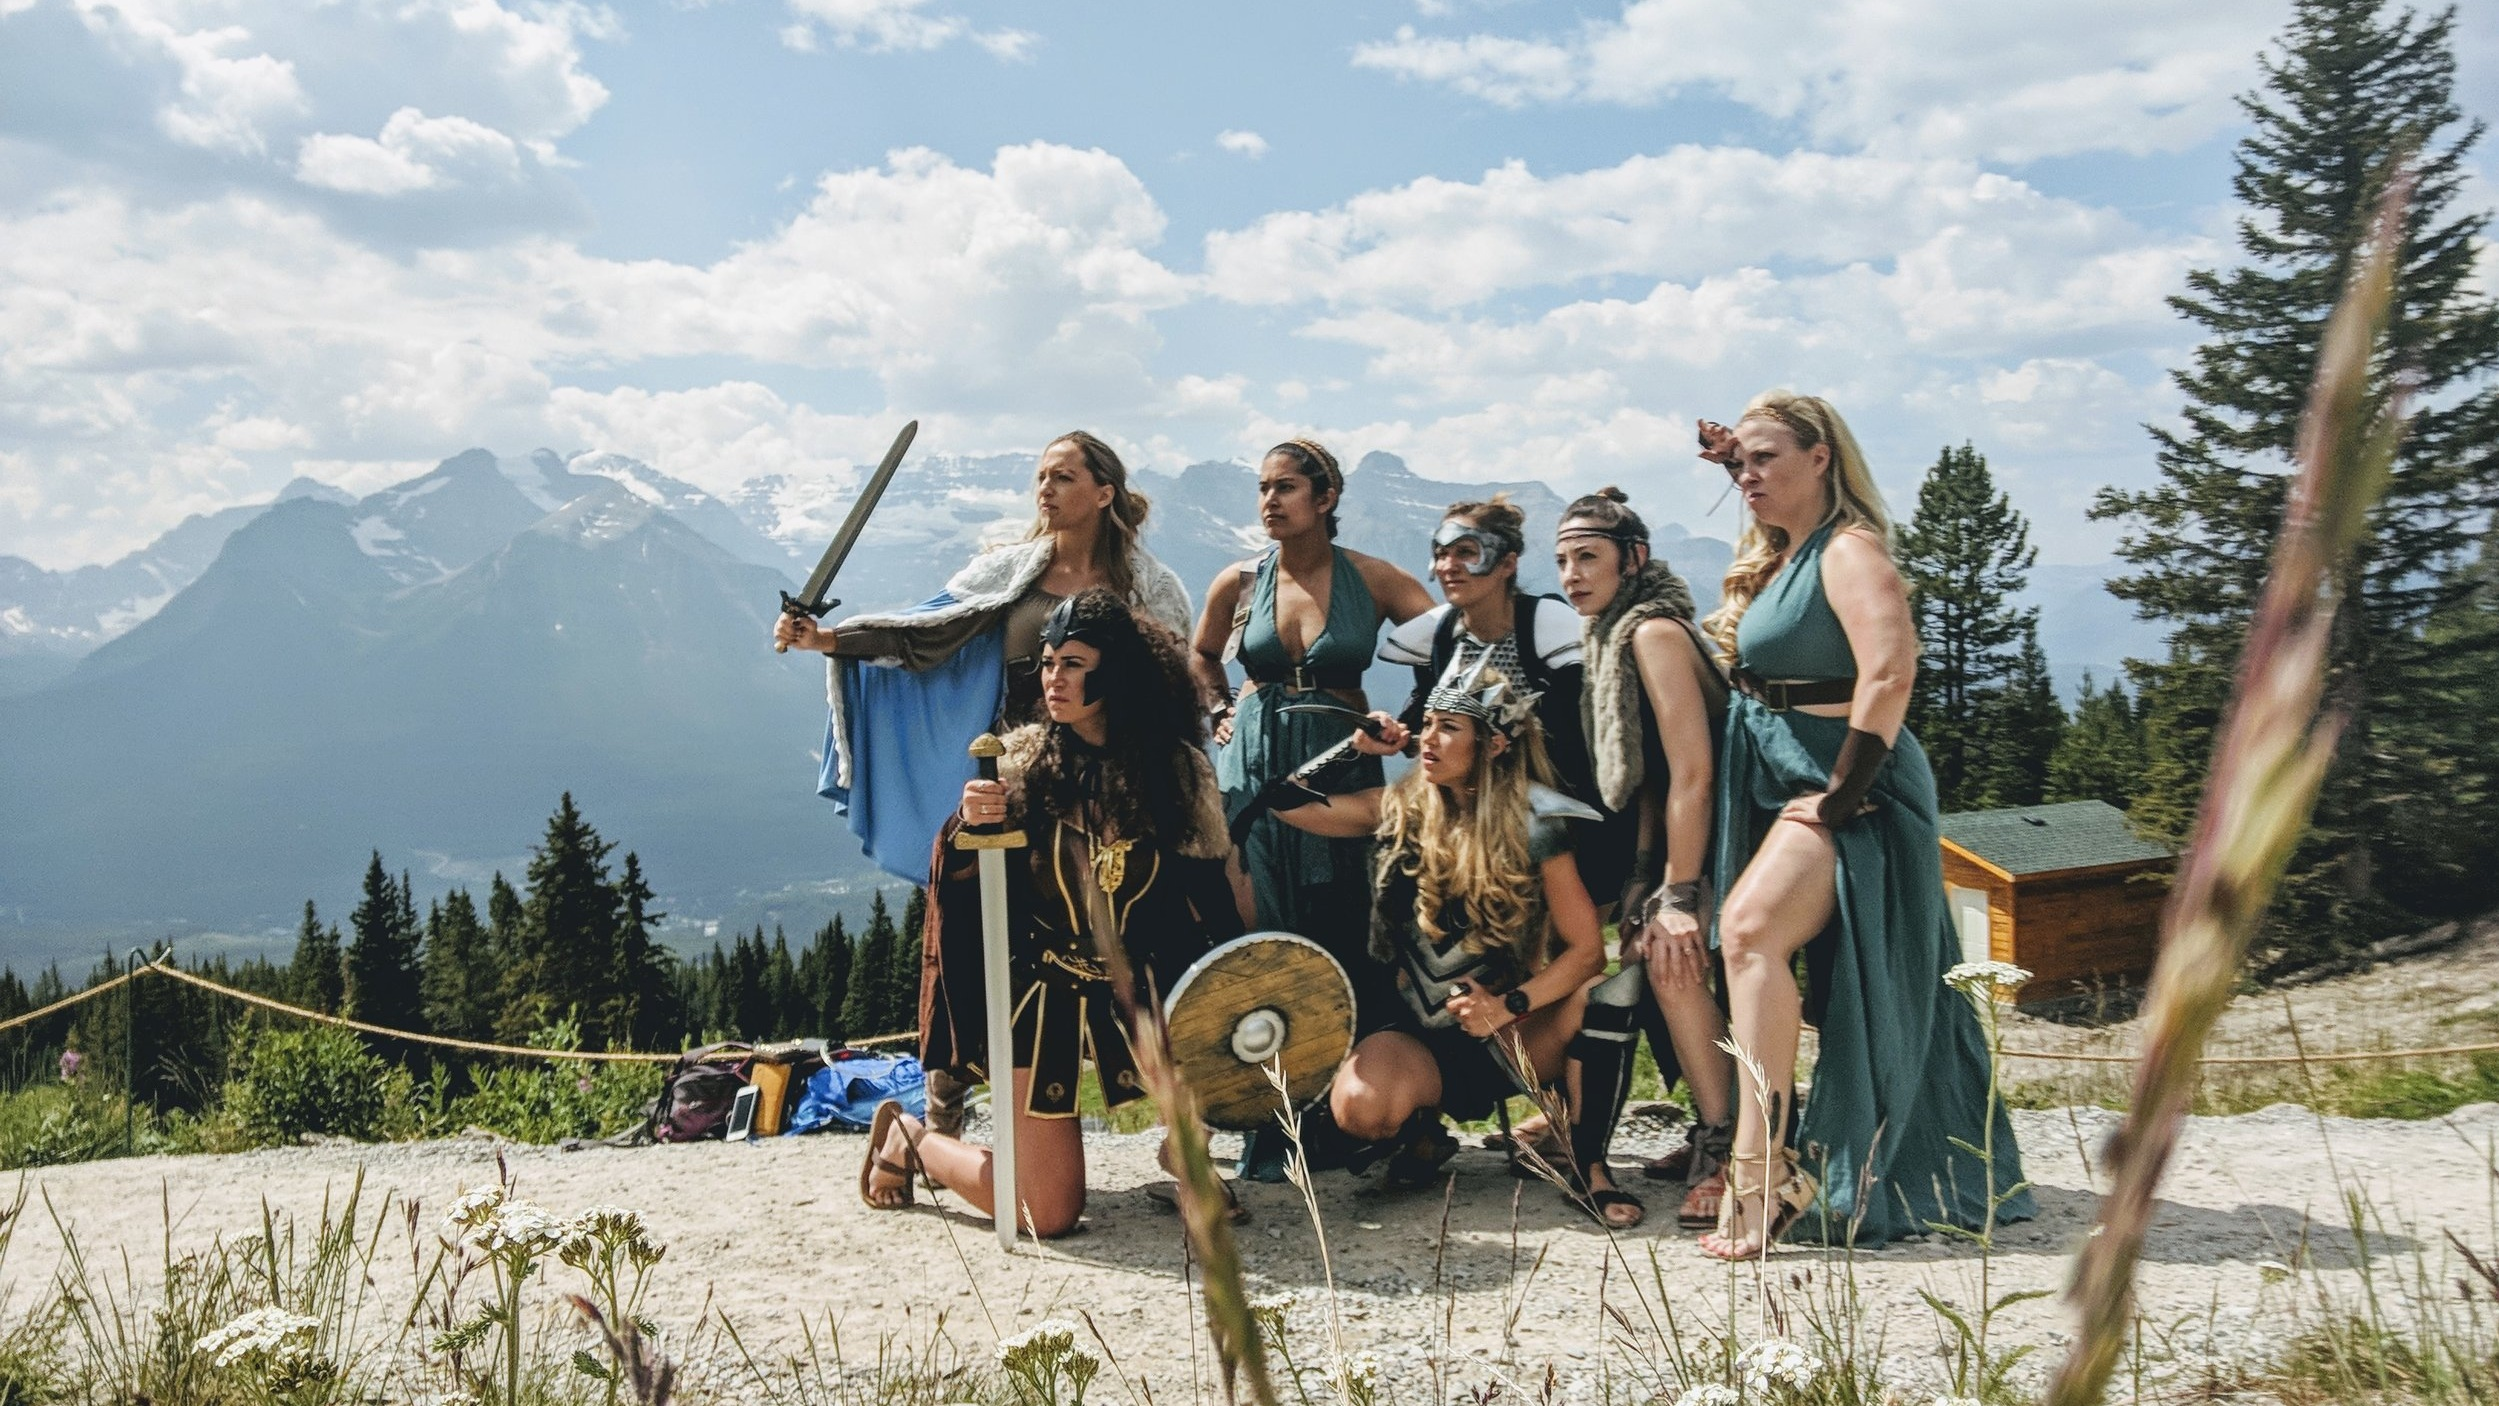 Our Story… - This summer we threw a warrior-themed bachelorette party in Banff, Canada. We wanted to do something different, celebrate our strength, and have fun along the way.Of course we had a blast, but we also felt unexpectedly empowered by the love and support that came our way from total strangers.It was a party like no other, and an incredible bonding experience. Most importantly, it was a timely reminder of the respect and camaraderie powerful women can inspire together.We created The Armourie to enable other women to celebrate their inner strength, one party at a time.